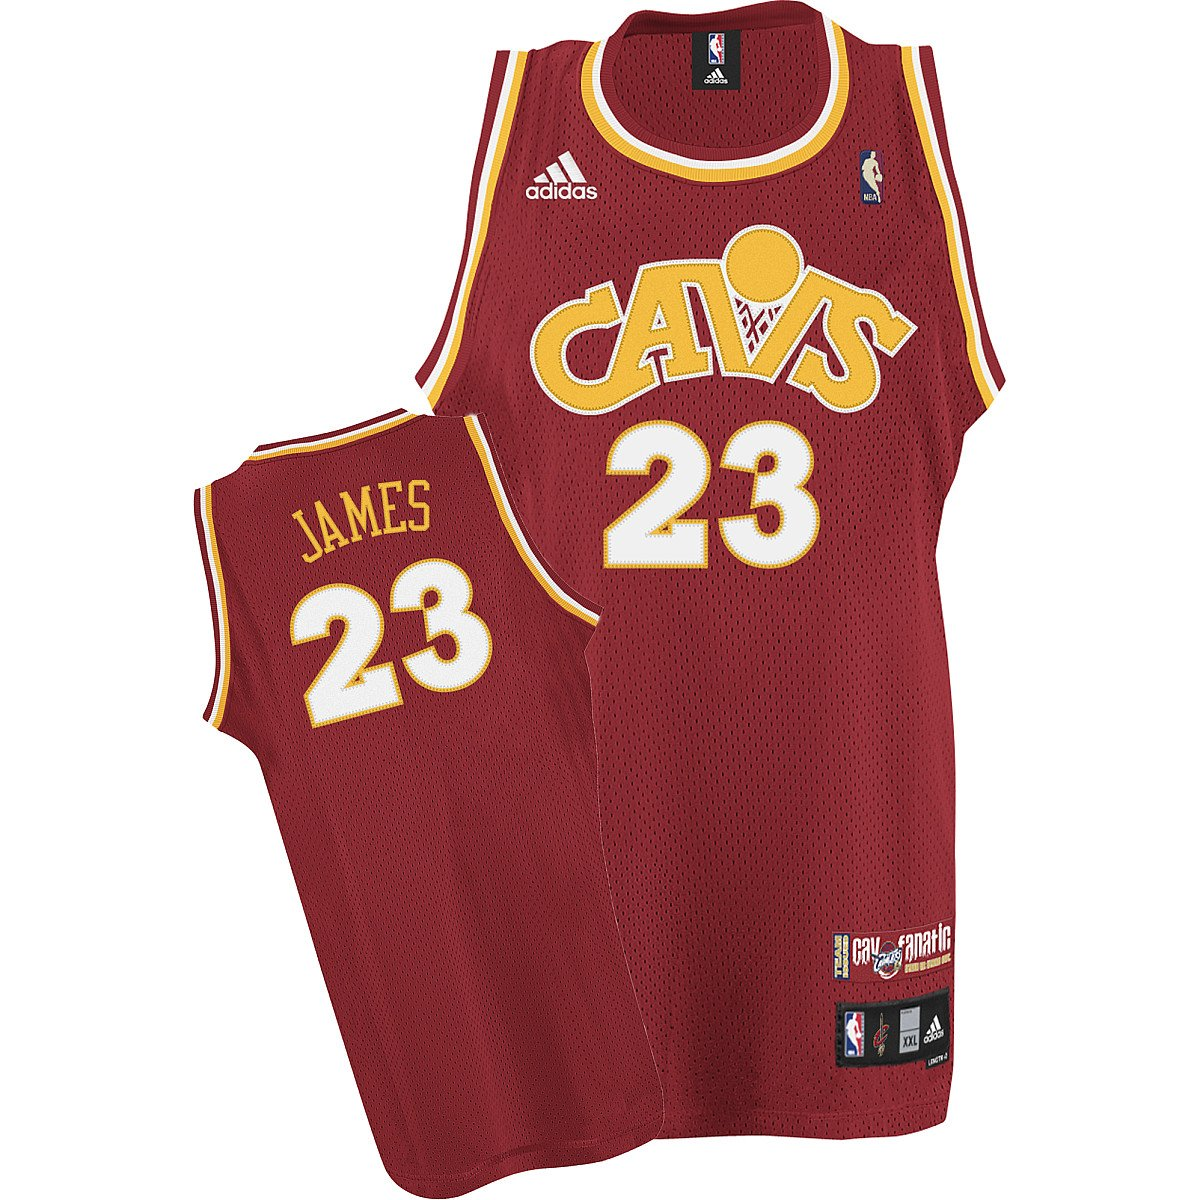 low priced 7f597 20f52 Amazon.com : adidas Cleveland Cavaliers #23 LeBron James ...